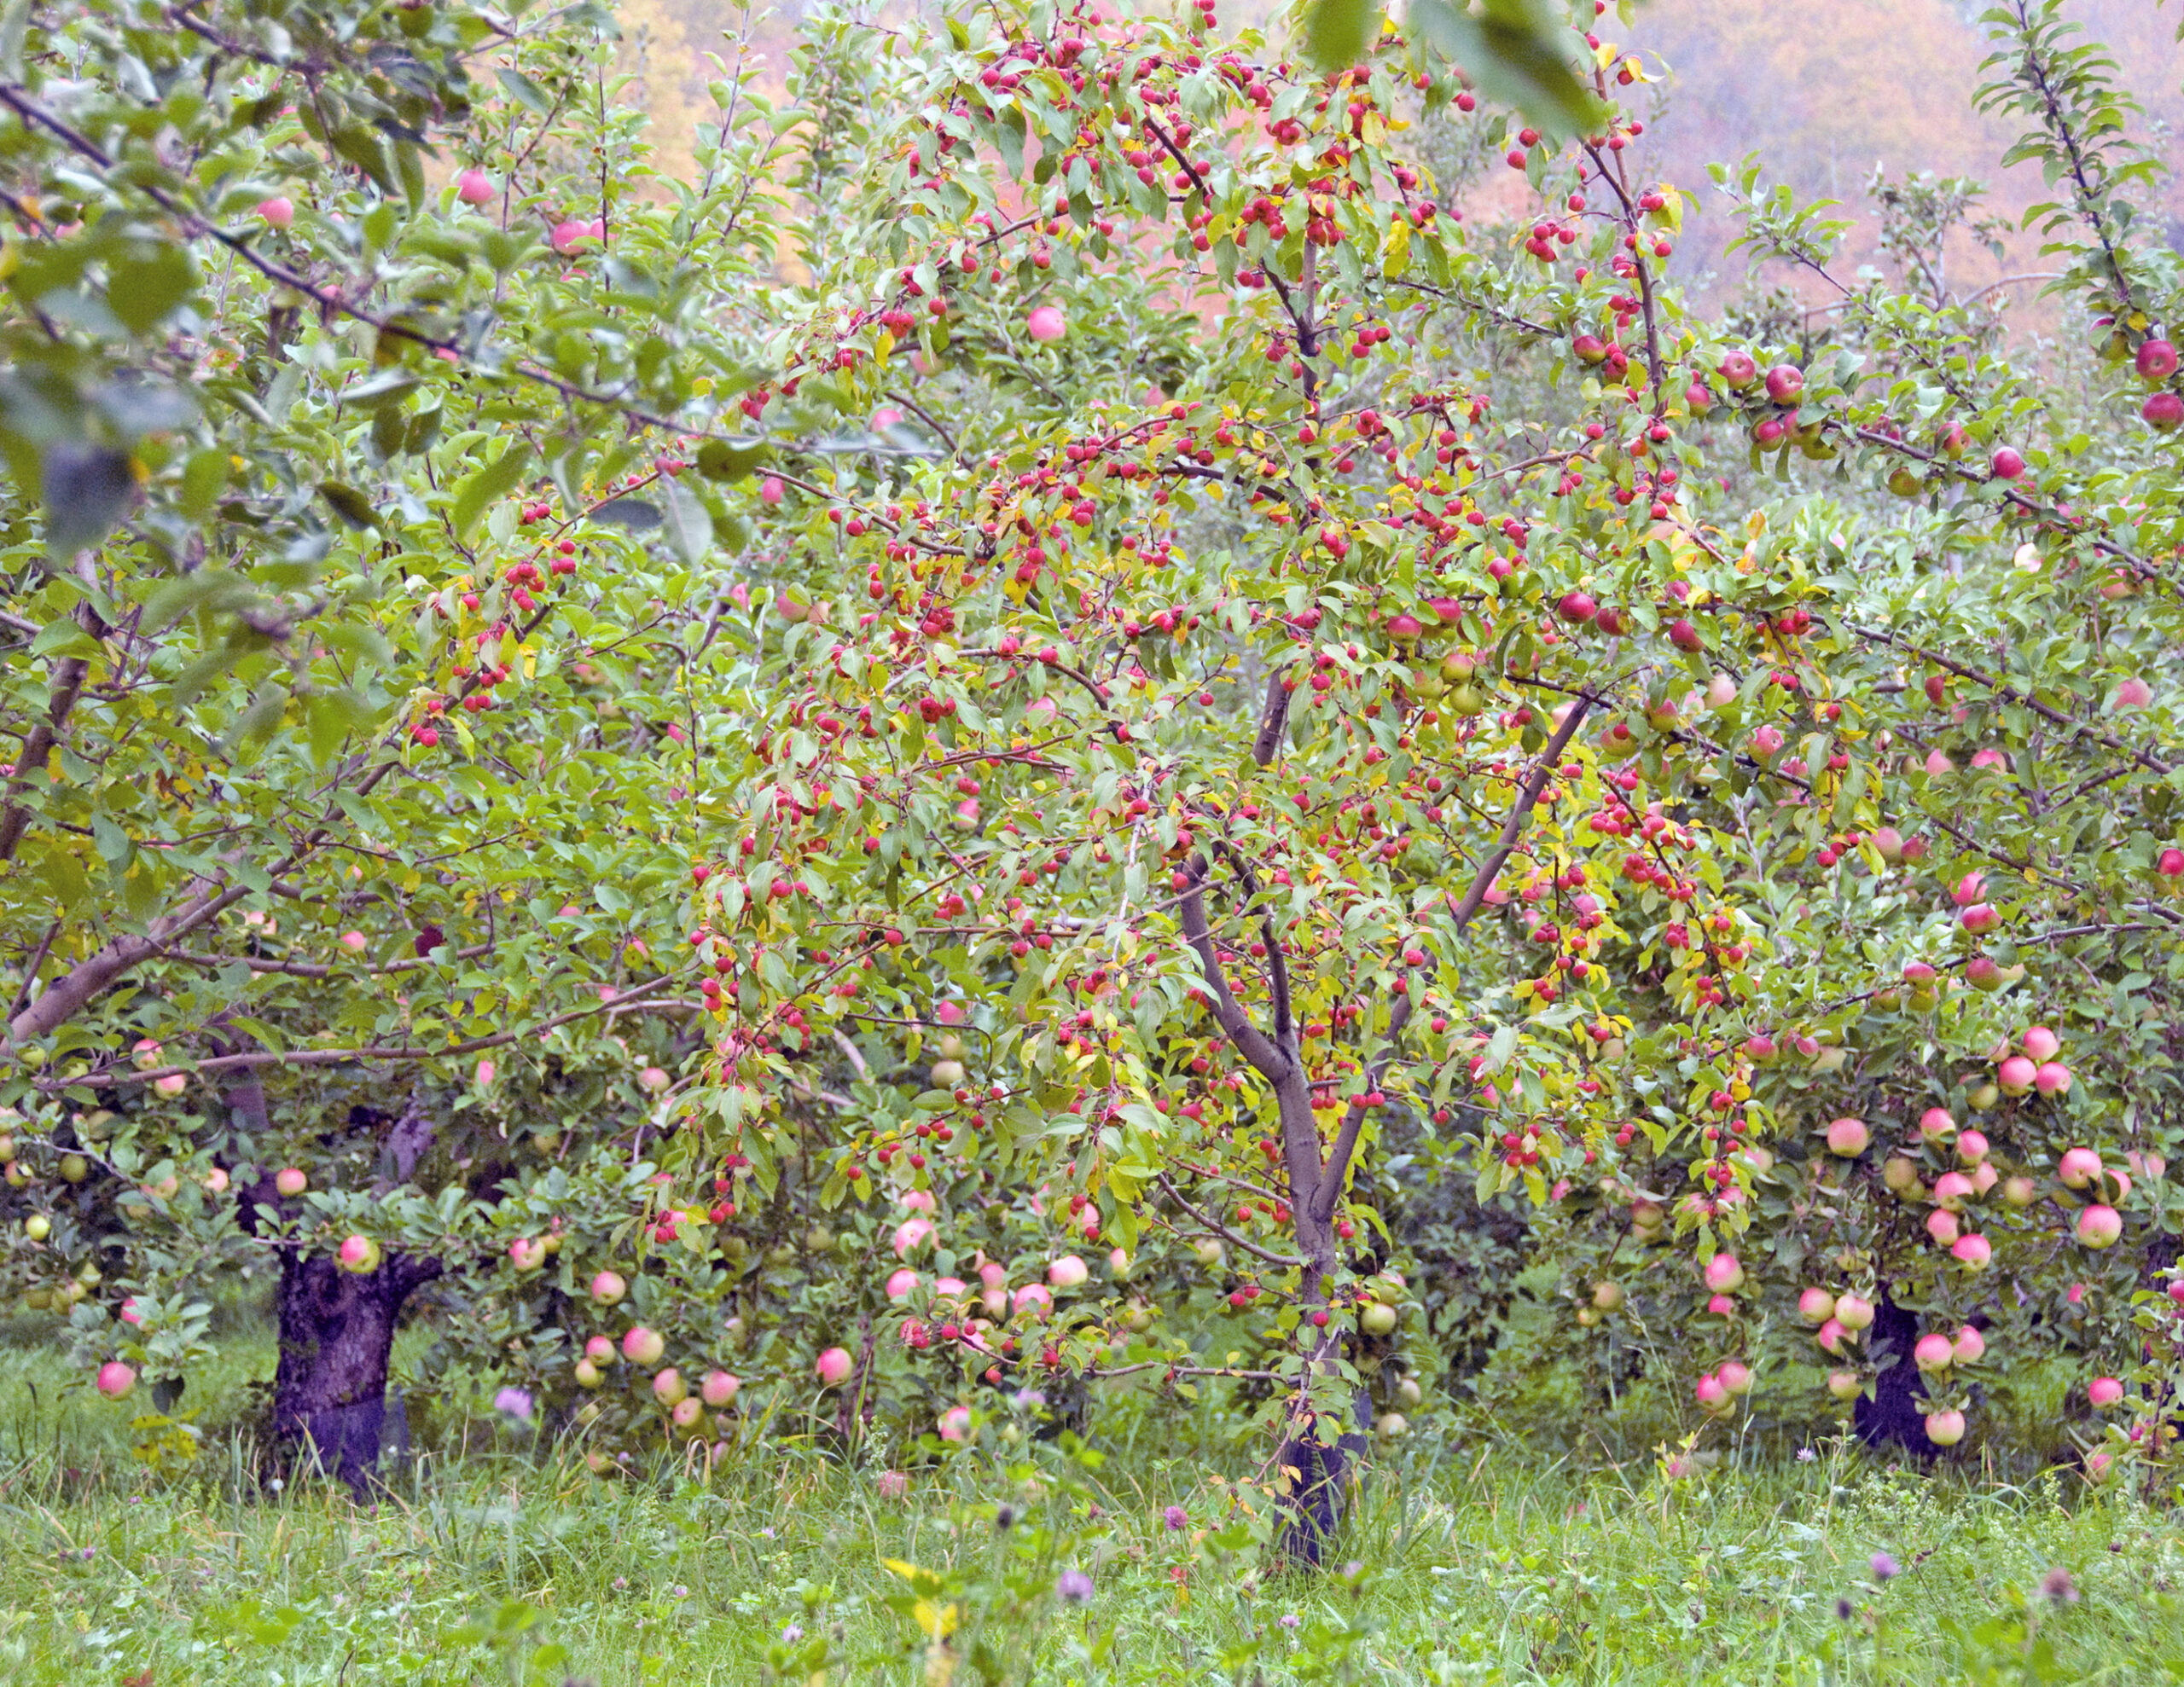 Scott Farm orchard before harvest